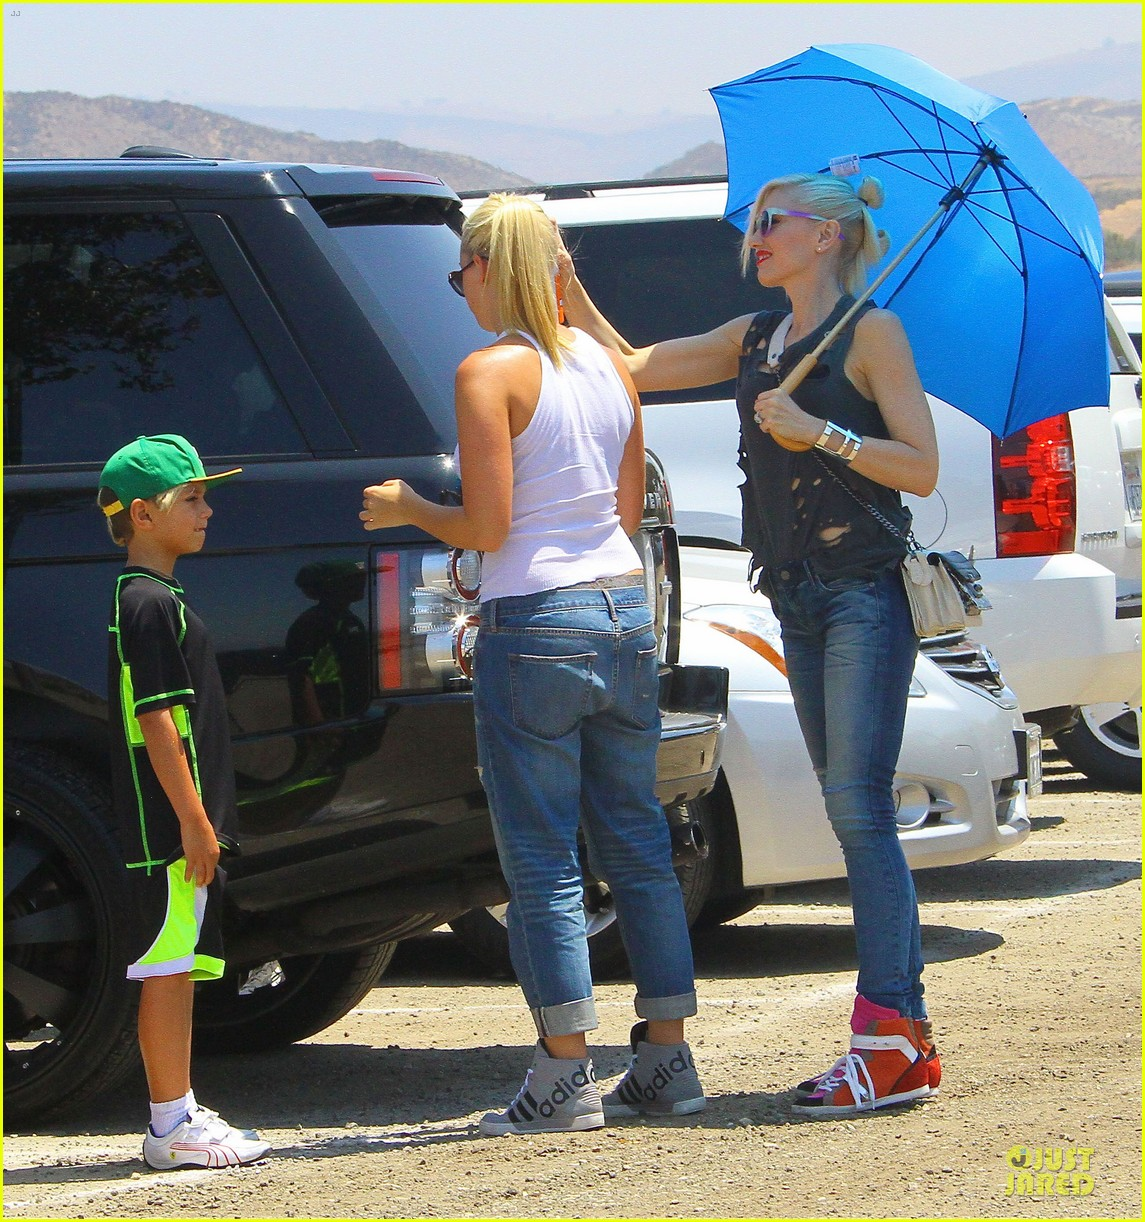 gwen stefani sun blocking umbrella at underwood family farms 202905118